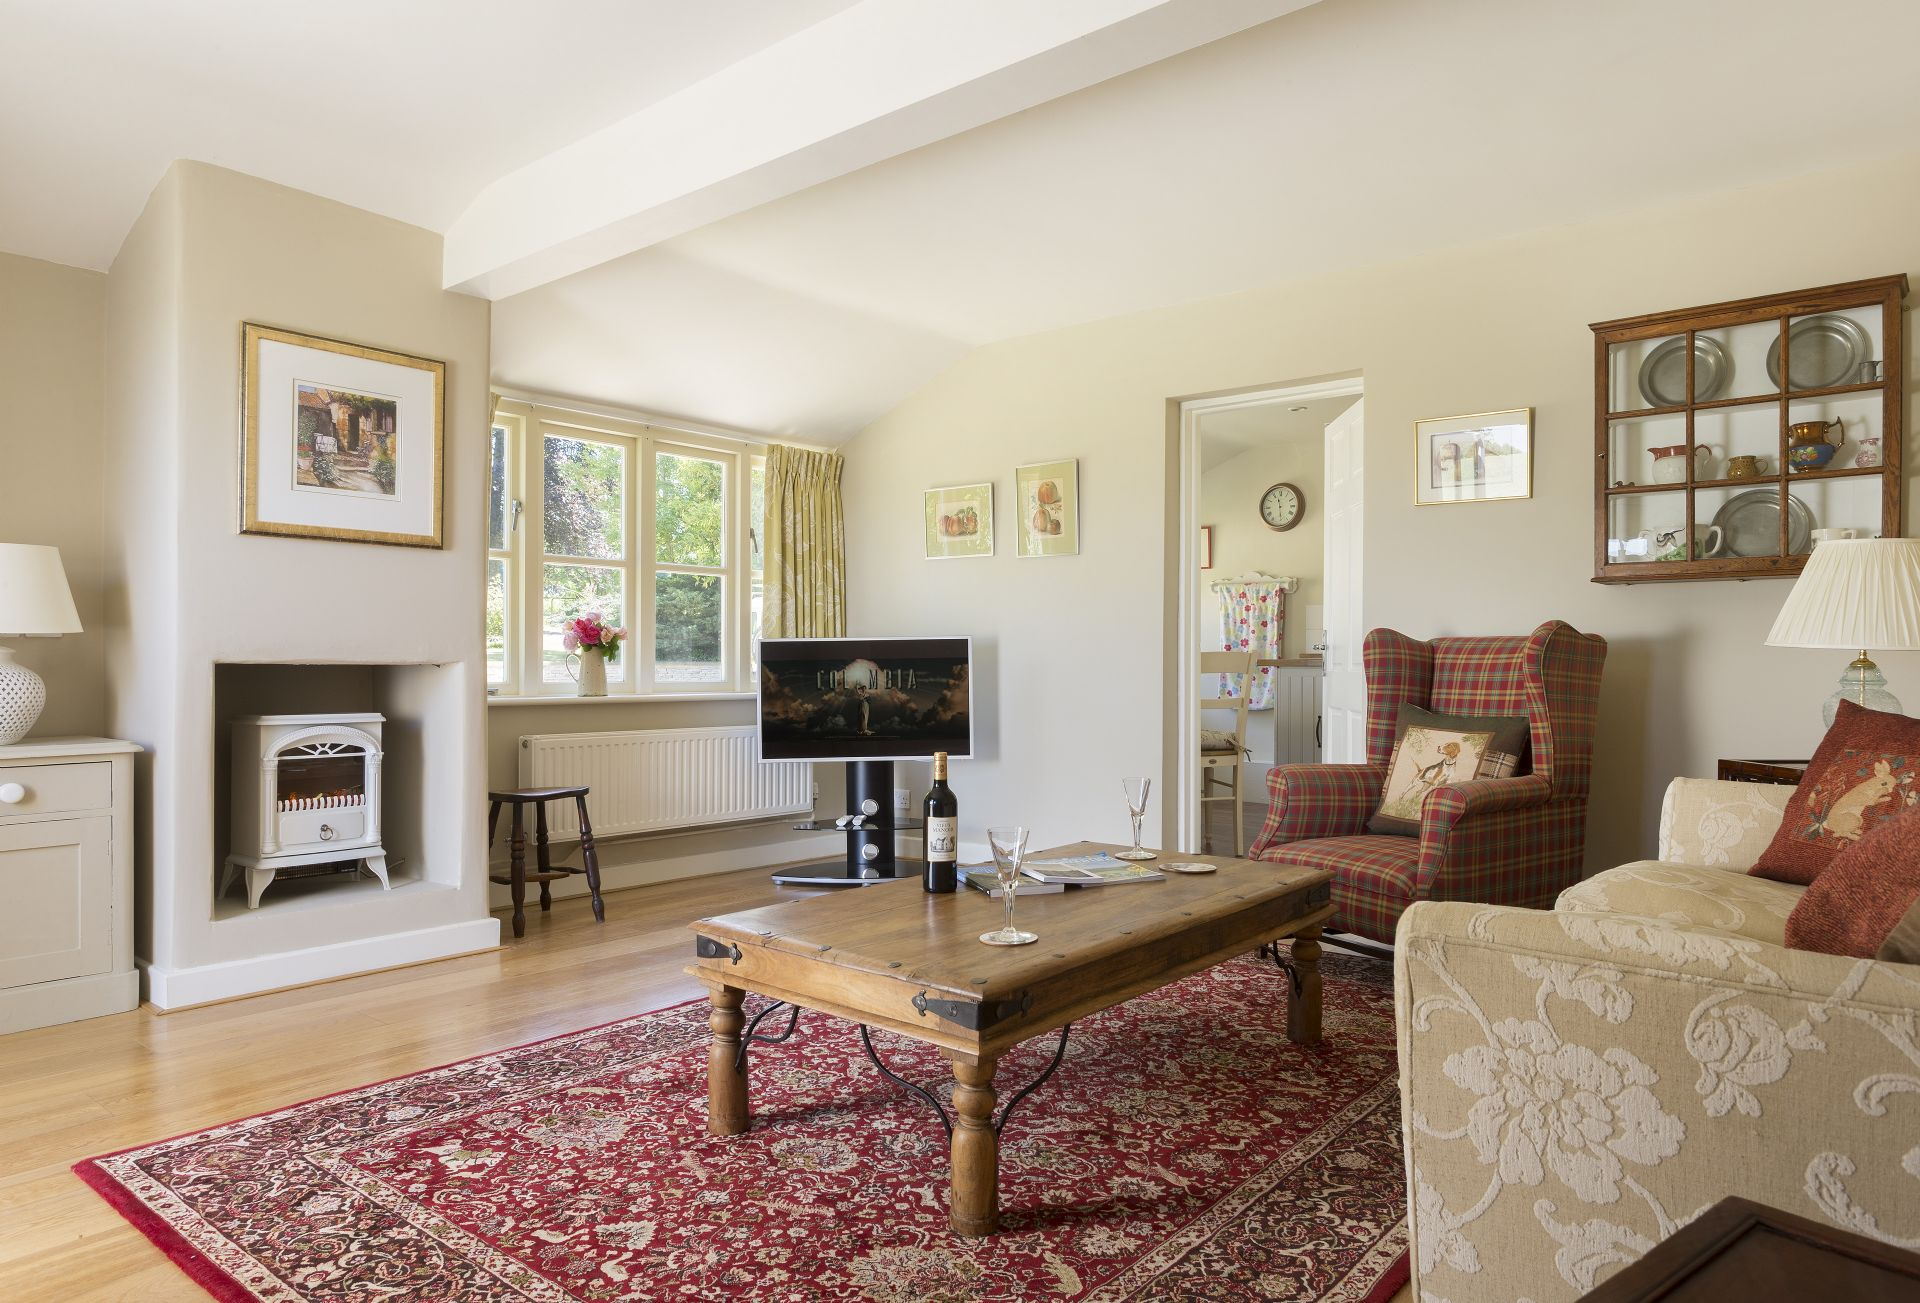 Ground floor: Sitting room with electric wood burner style stove